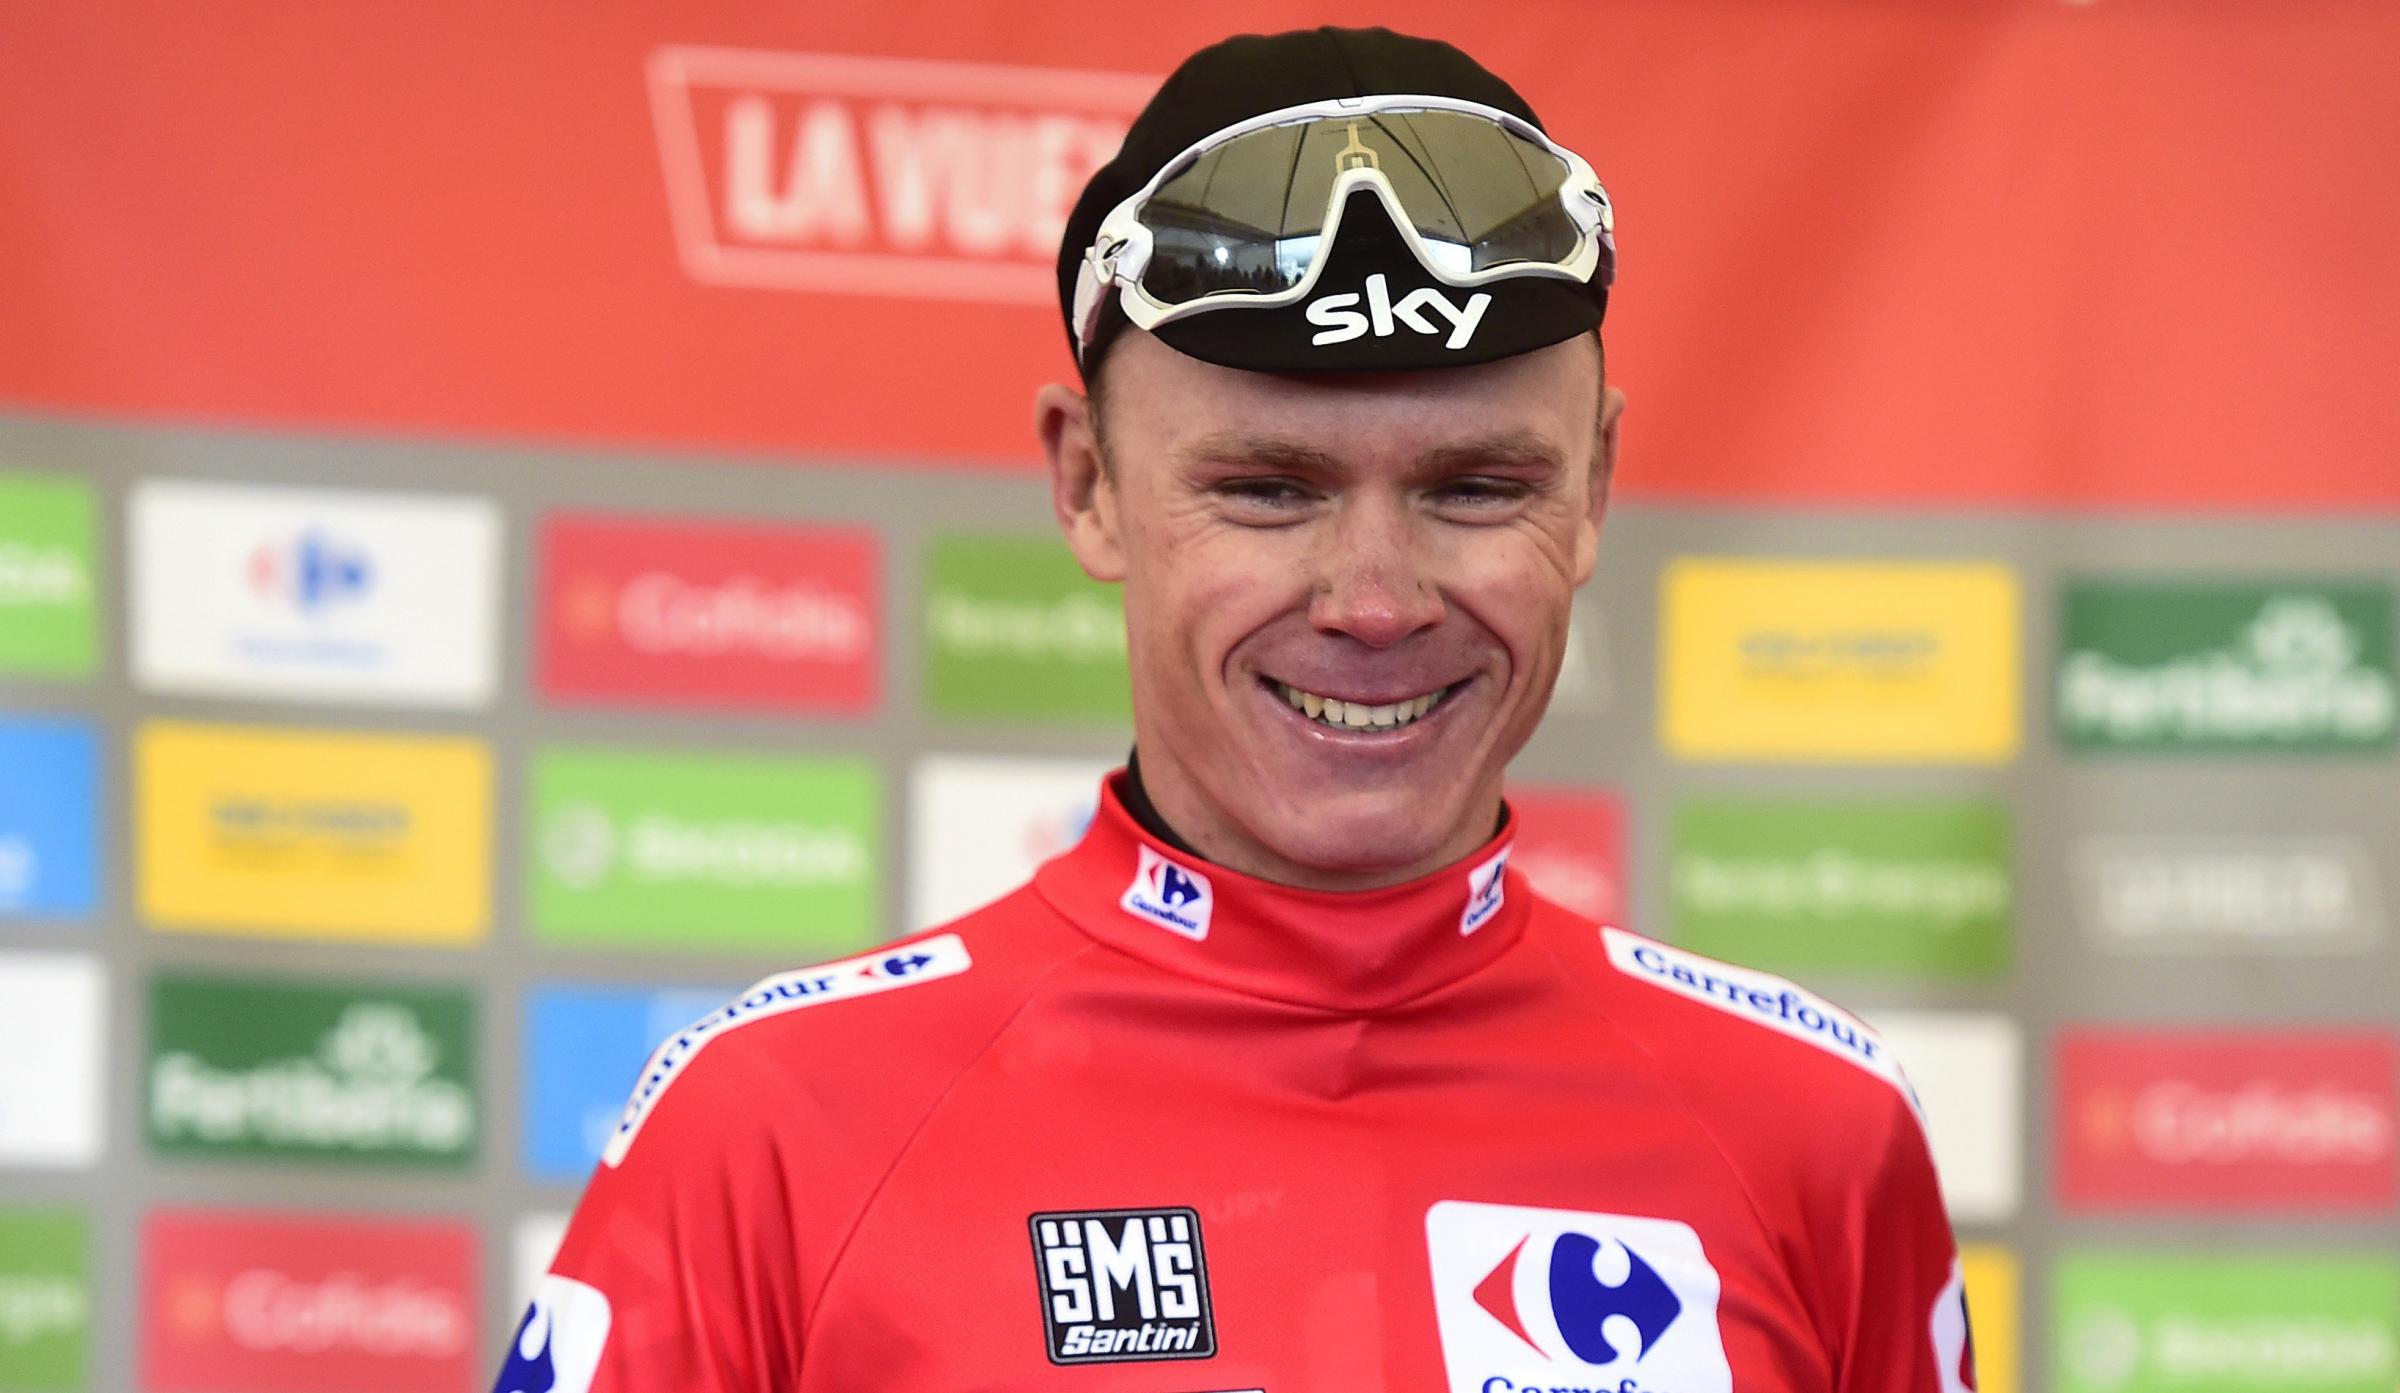 Chris Froome will ride in the time trial at the world championships